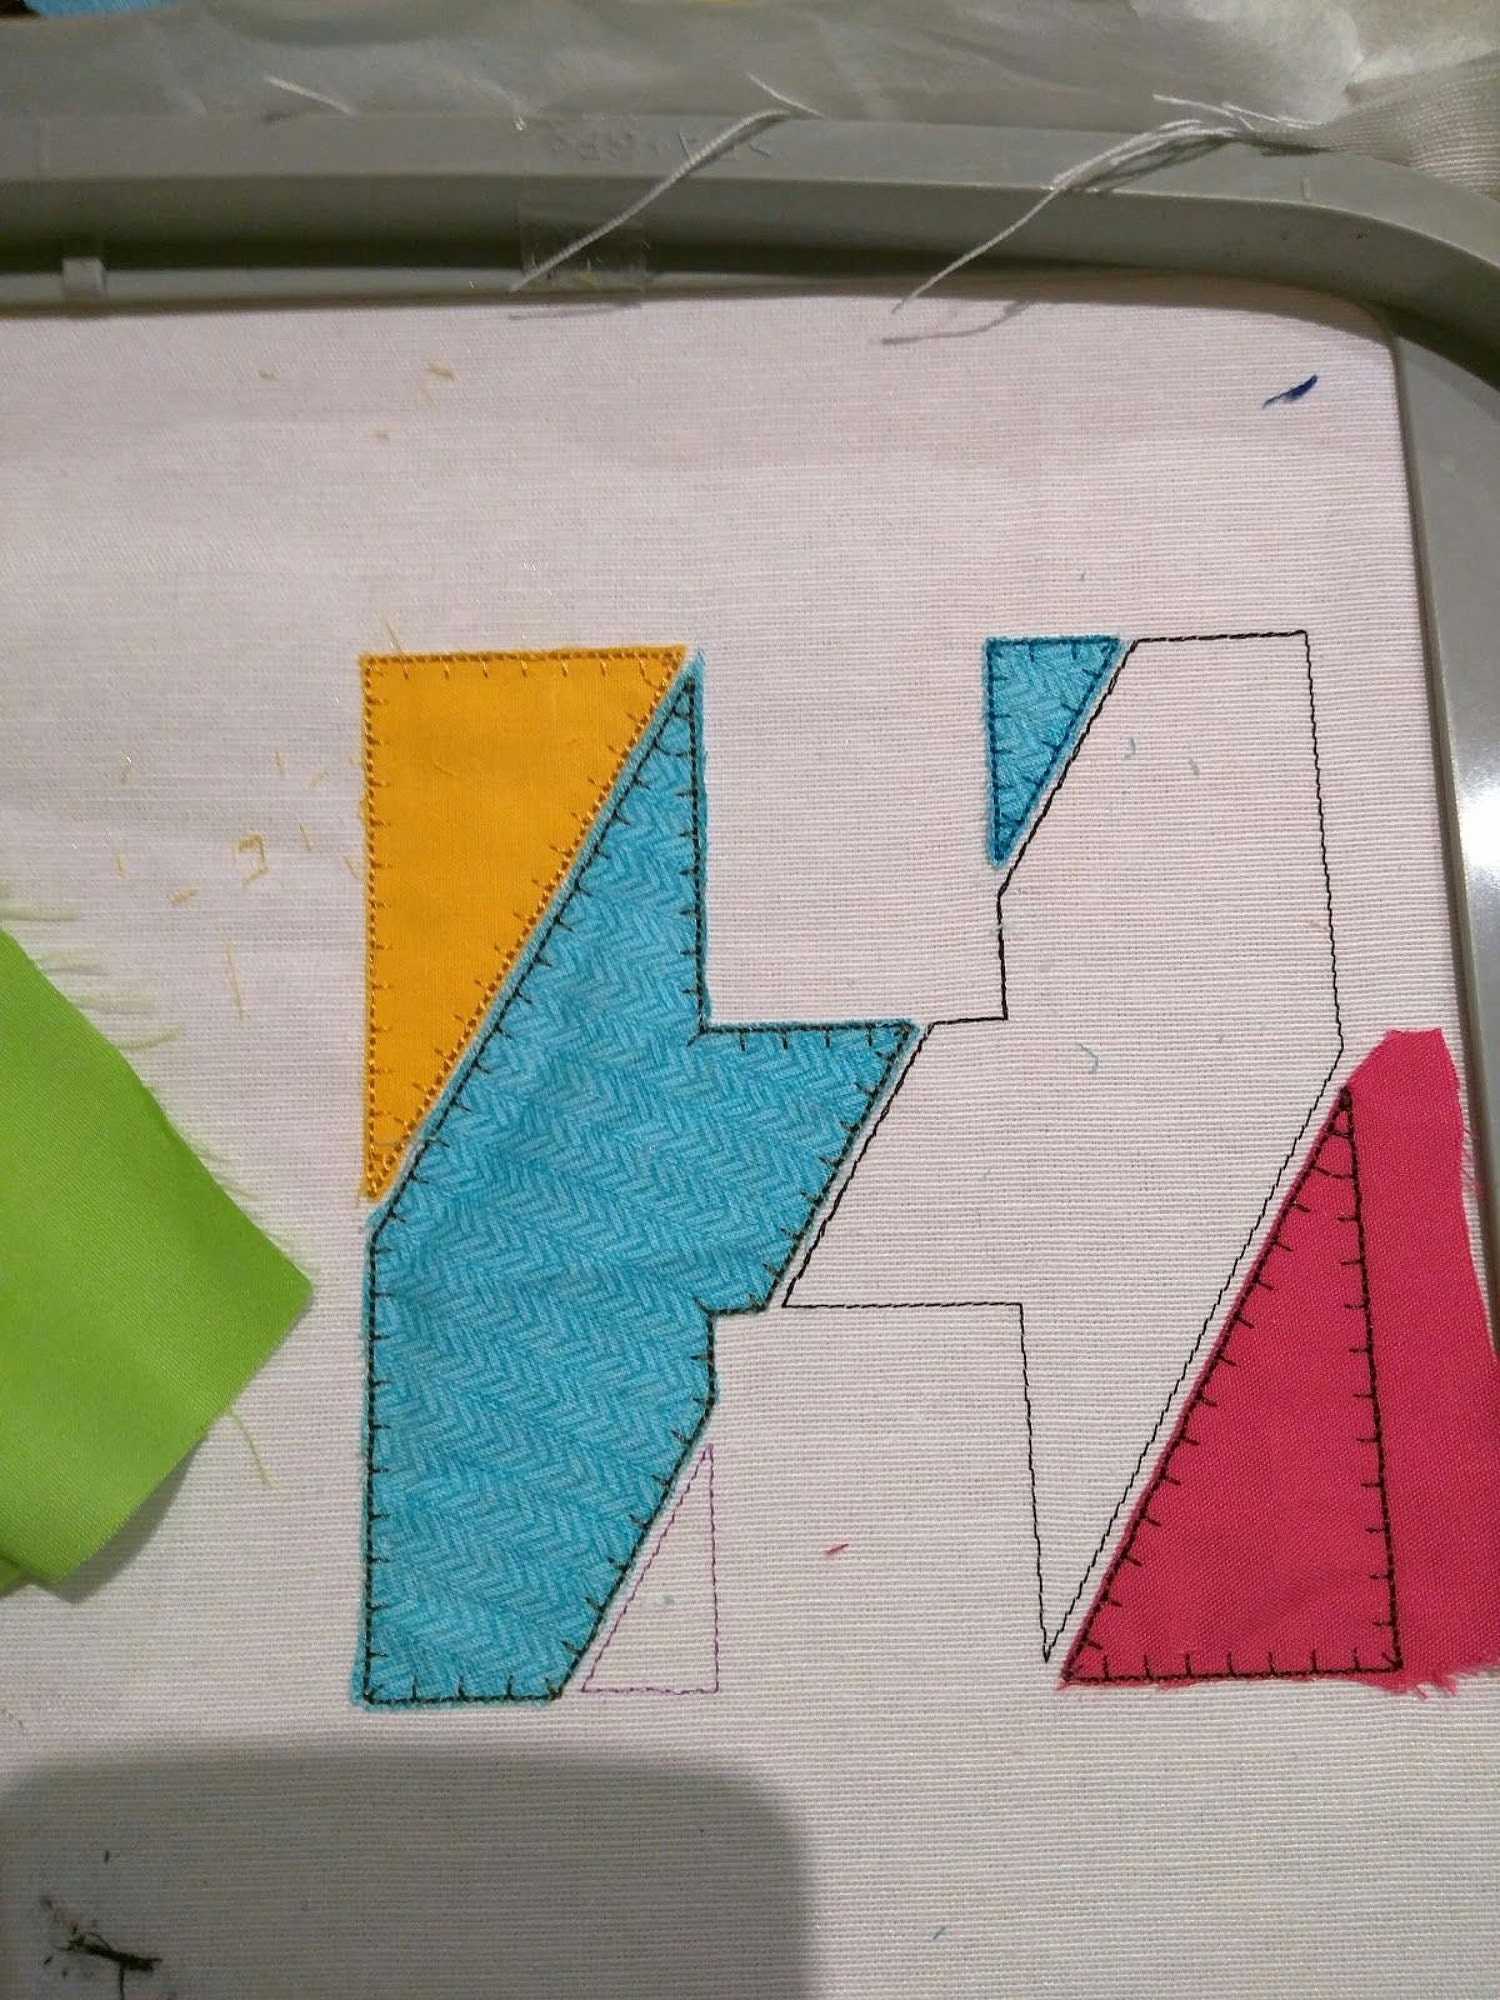 Patchwork style applique letters free instructions below